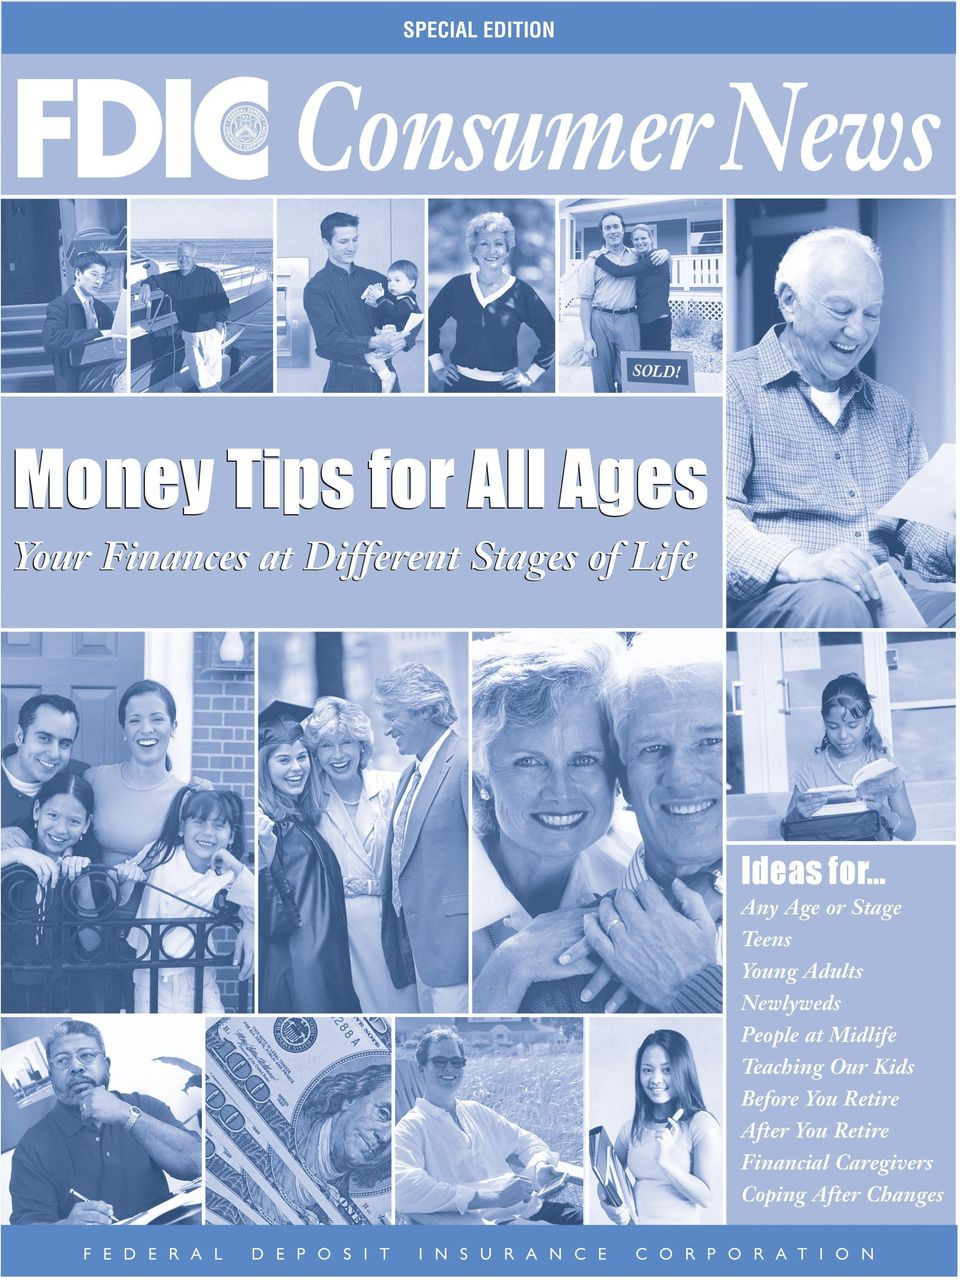 Teaching Our Kids Before You Retire After You Retire Financial Caregivers